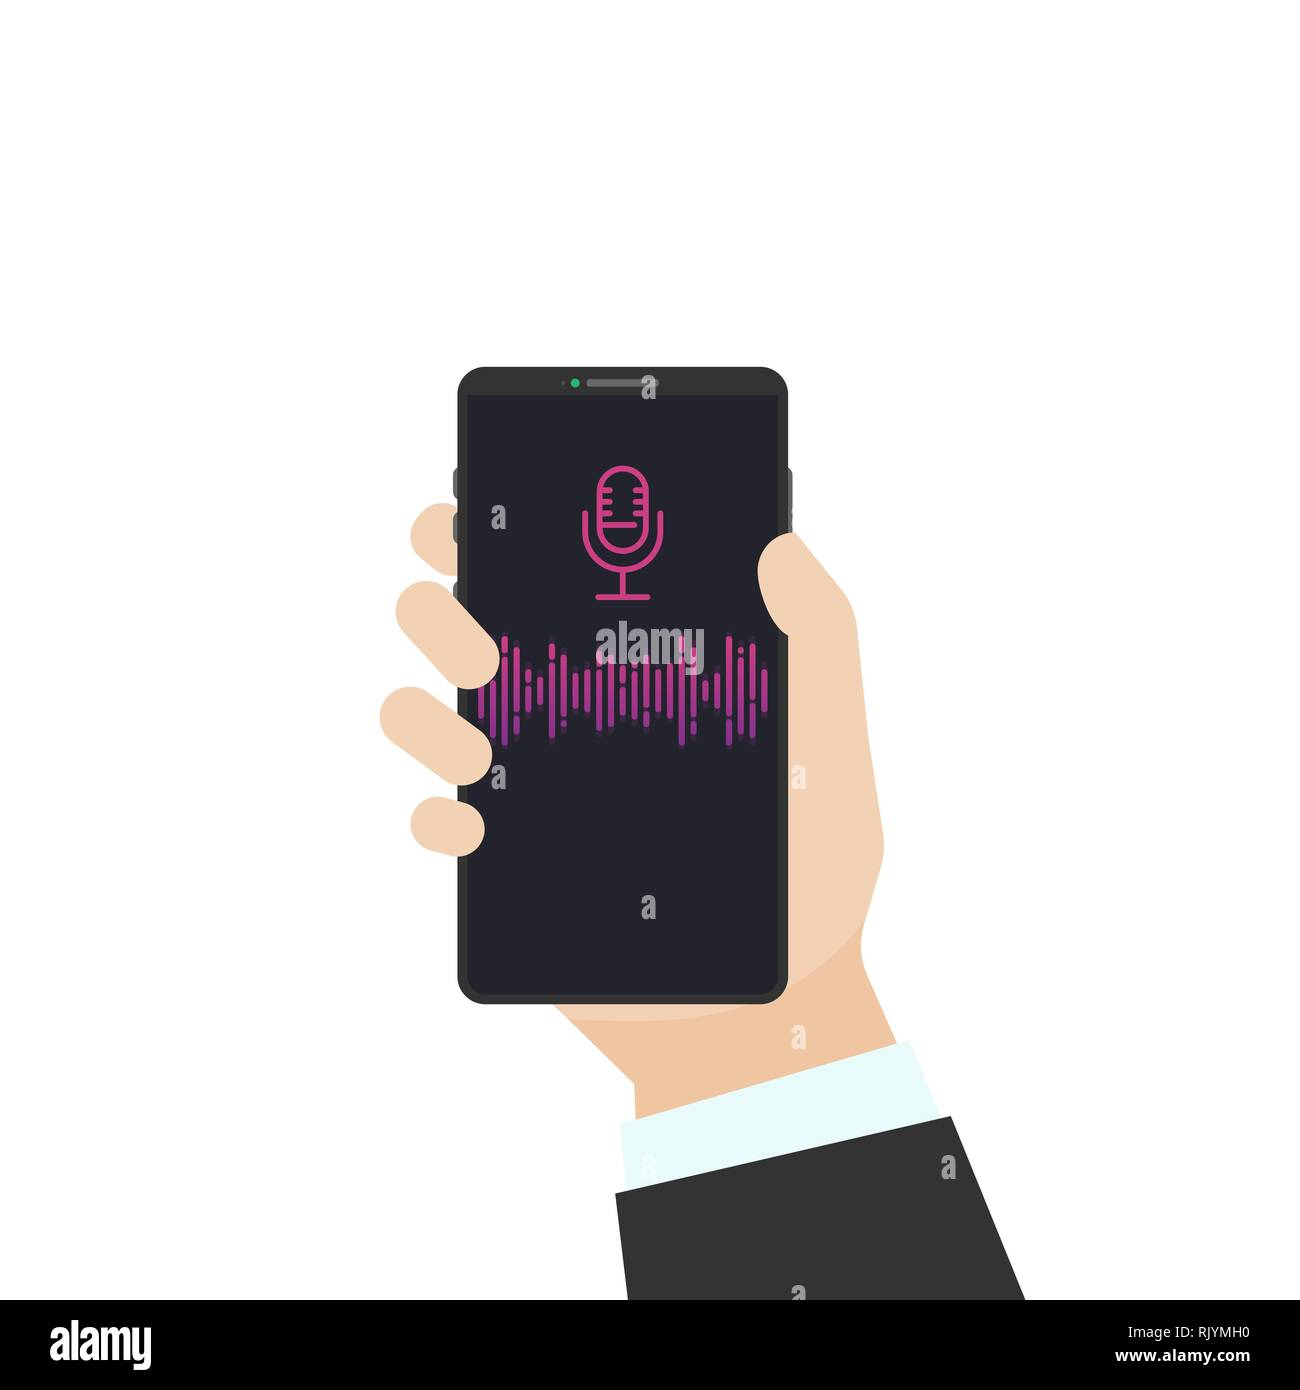 Voice assistant flat vector illustration. Human hand holding black phone with sound wave and microphone sign. Phone with voice recognition and communi - Stock Vector